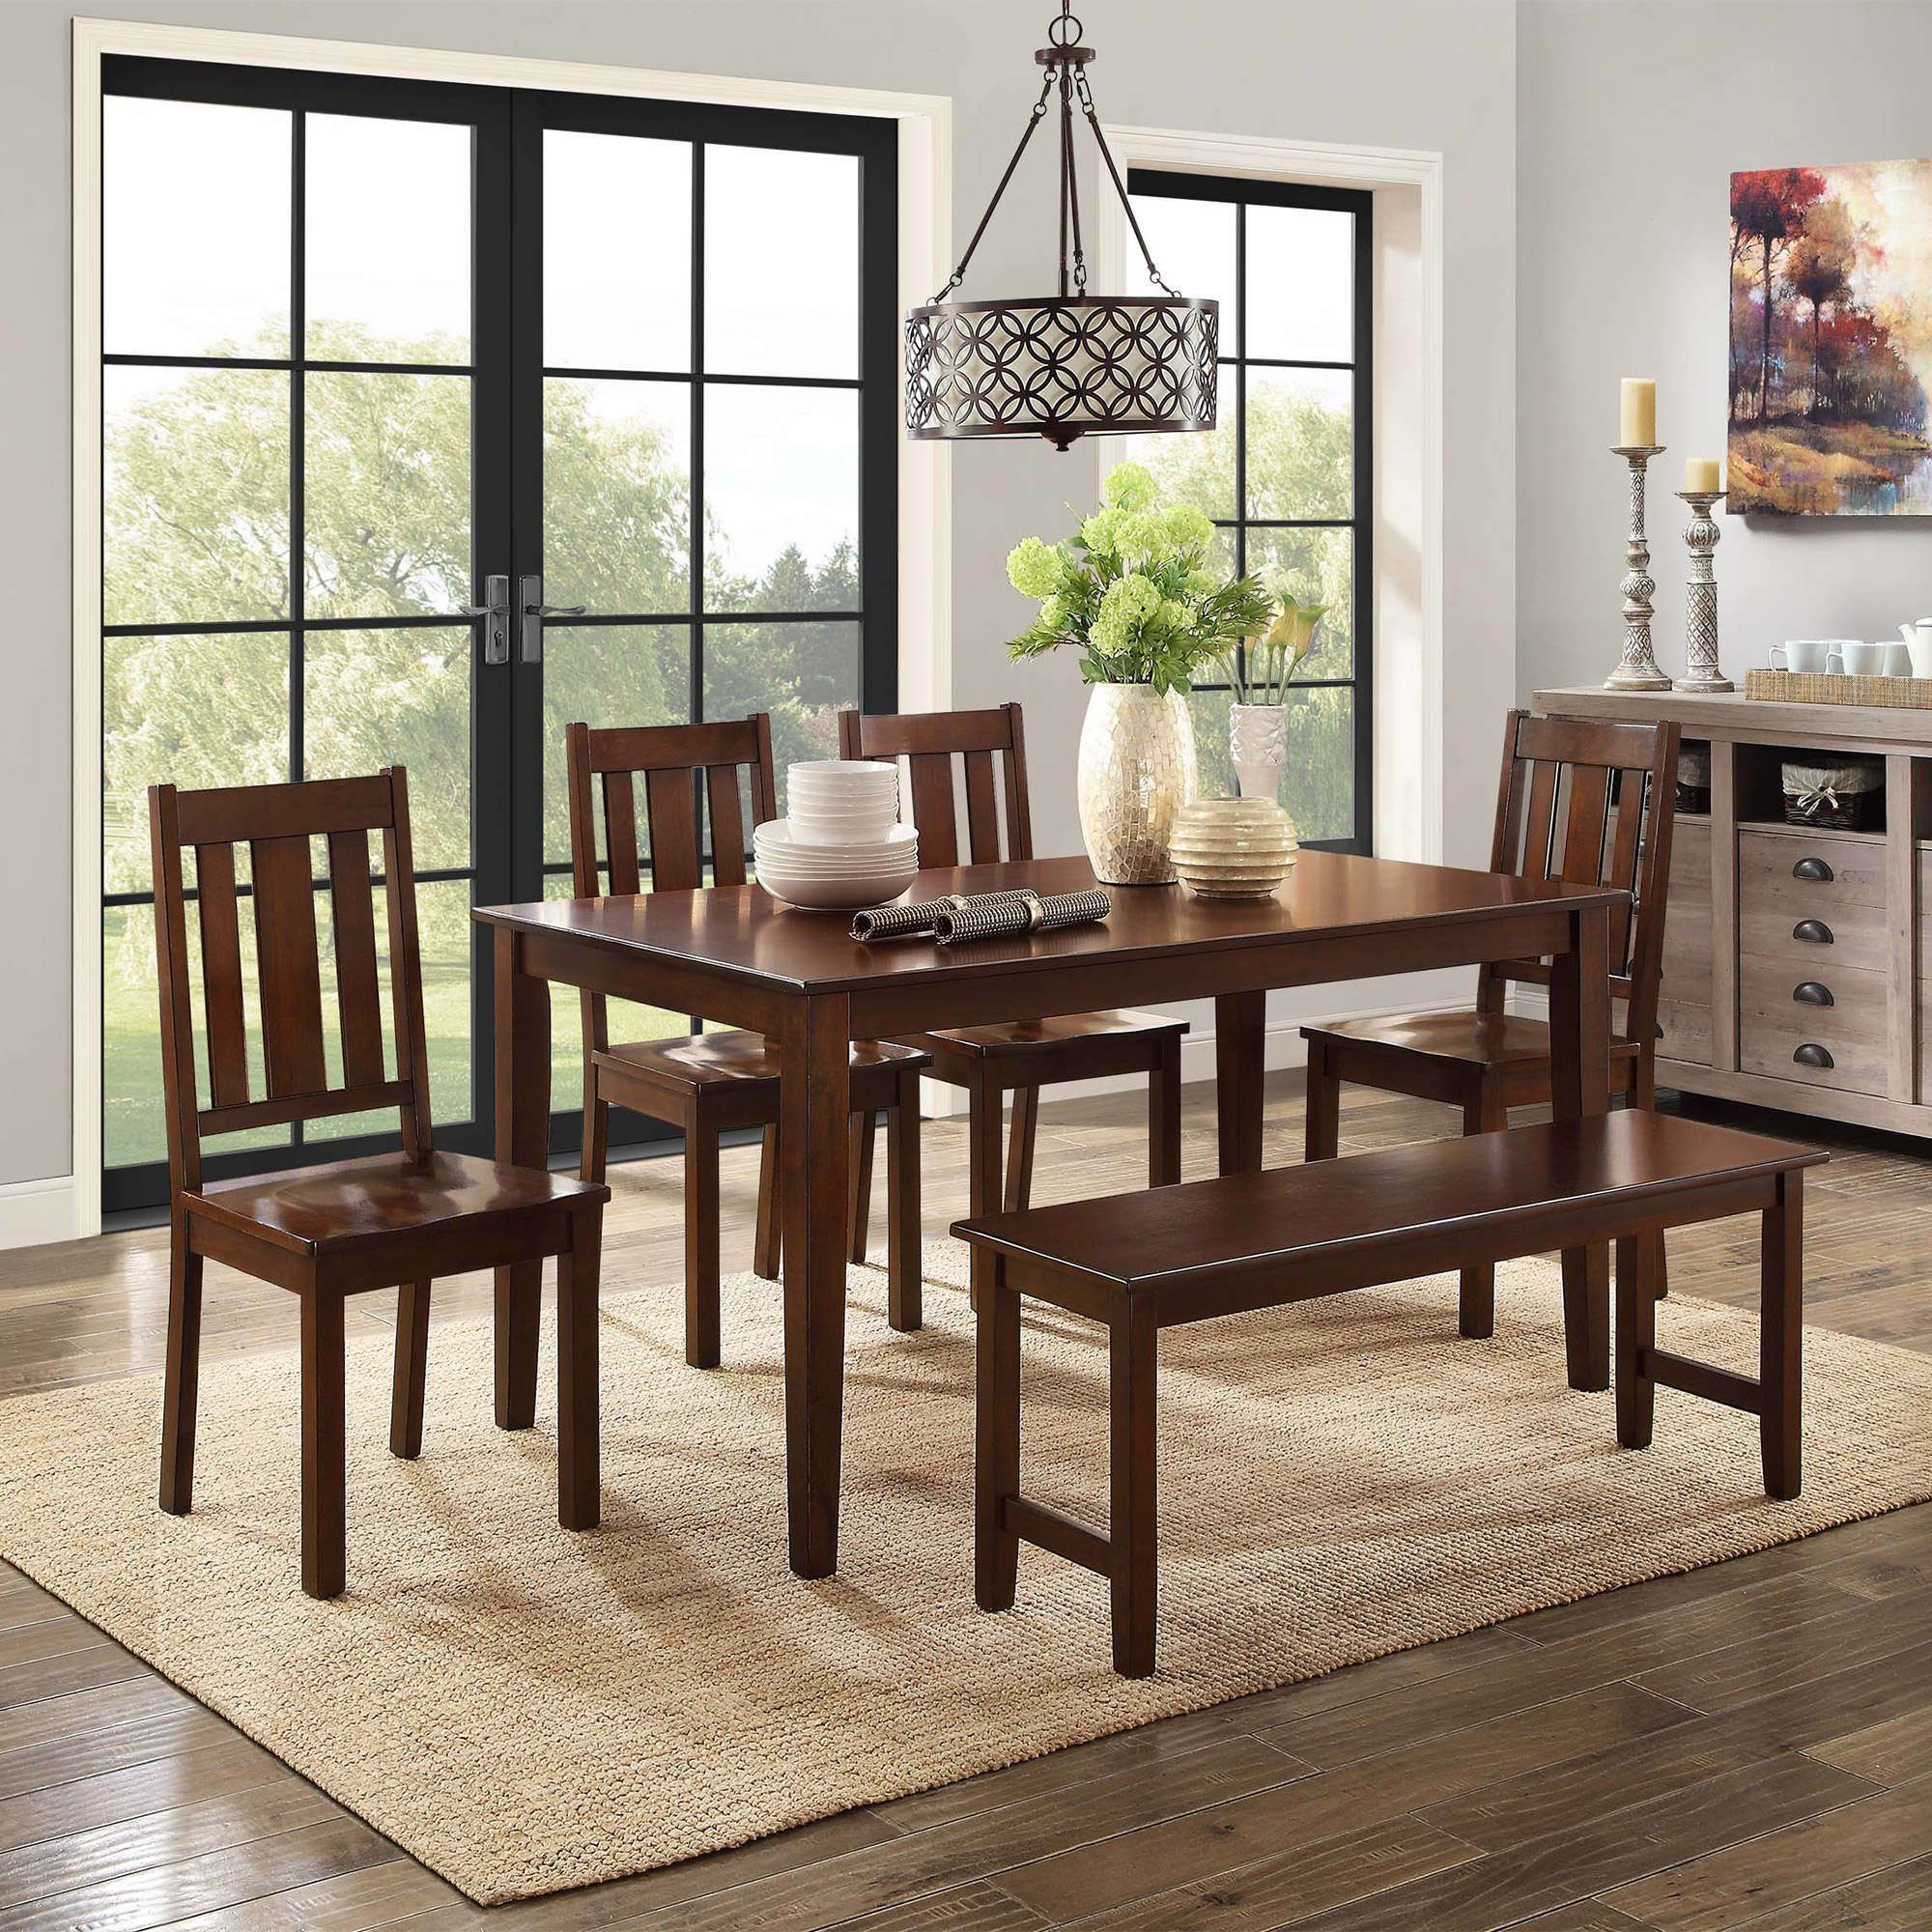 23+ Dining room table and chairs at walmart Best